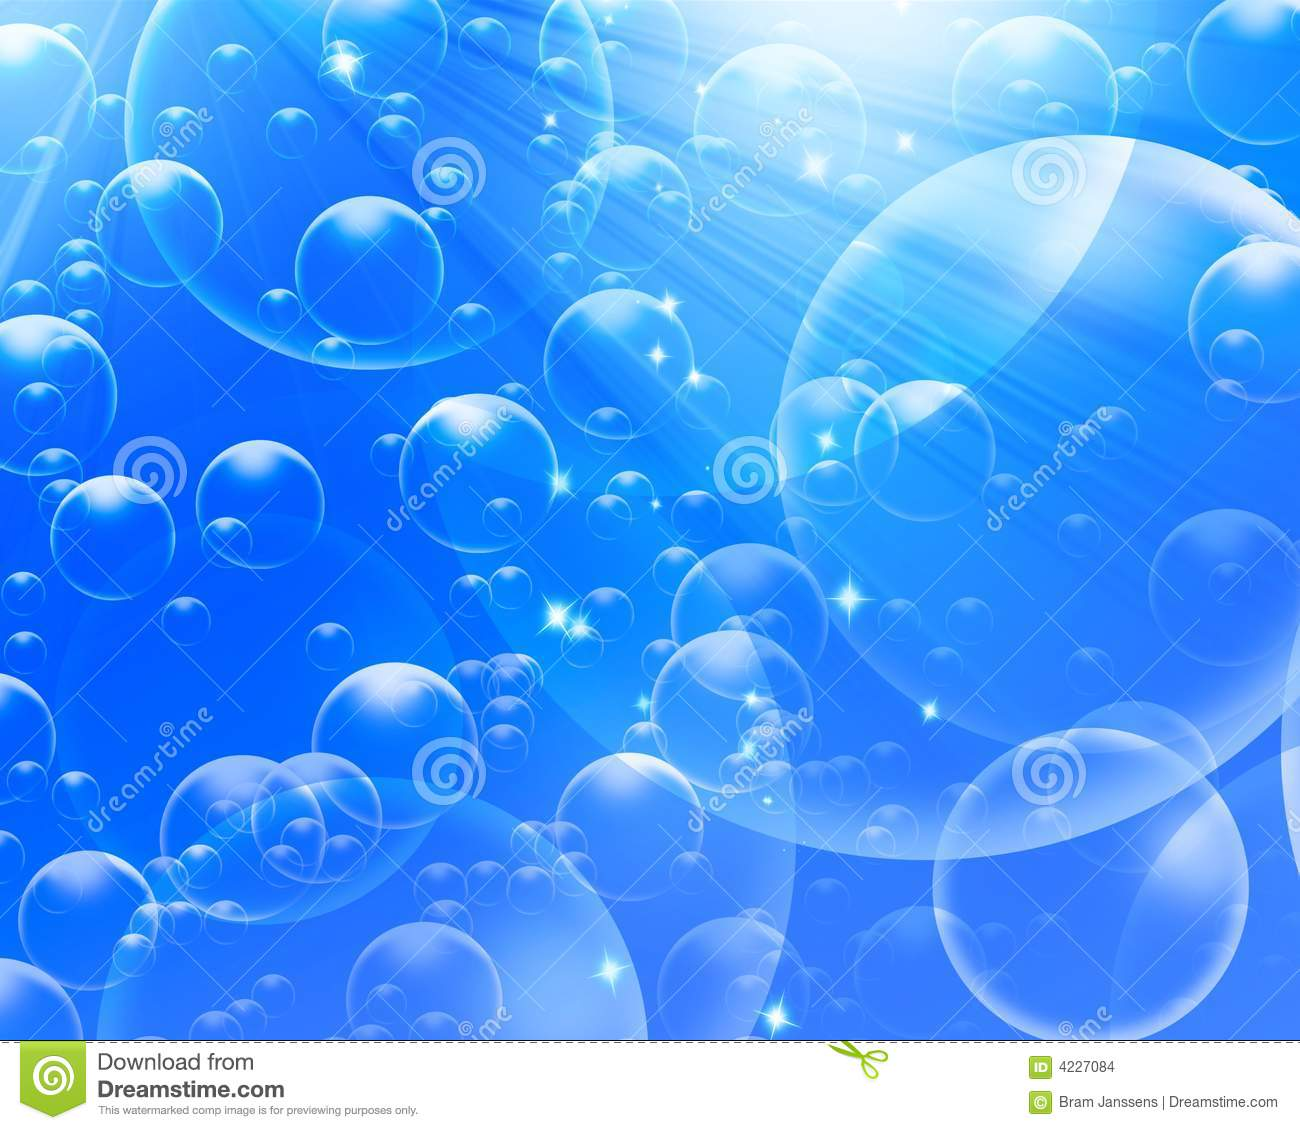 Ocean 3d Dynamic Wallpaper Air Bubbles On A Light Blue Background Stock Illustration